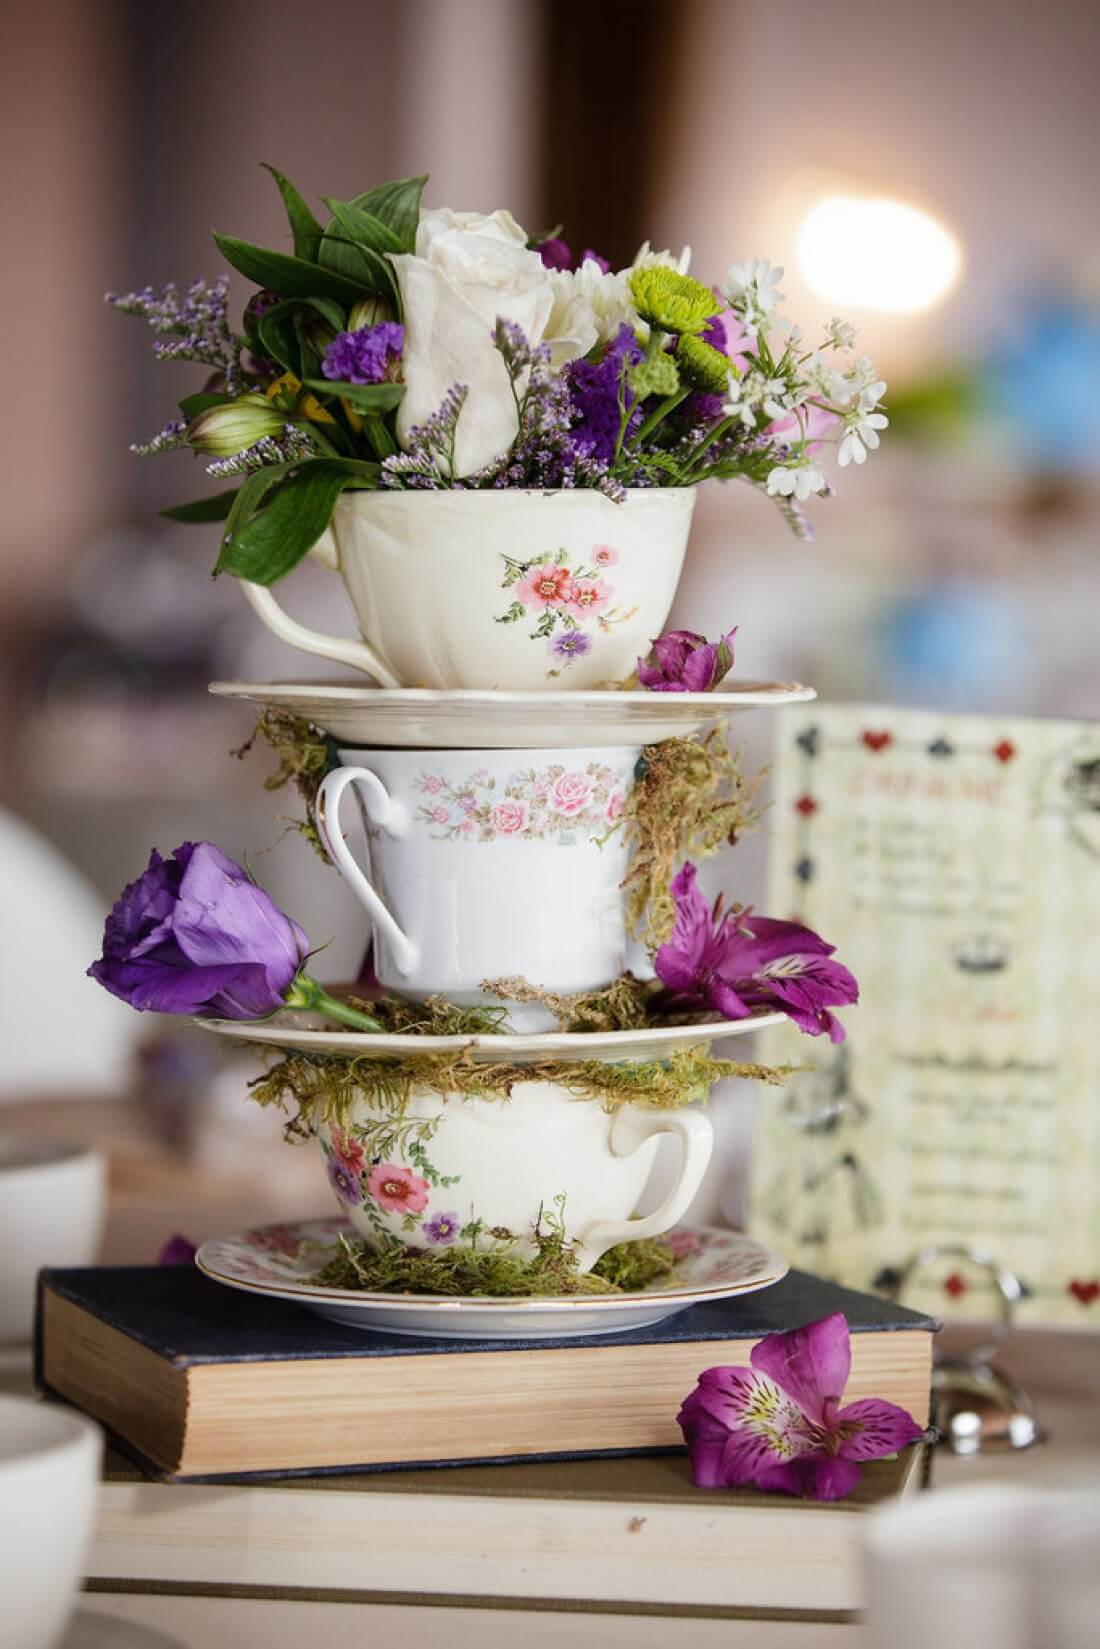 Teacup and Saucer Floral Tabletop Arrangement